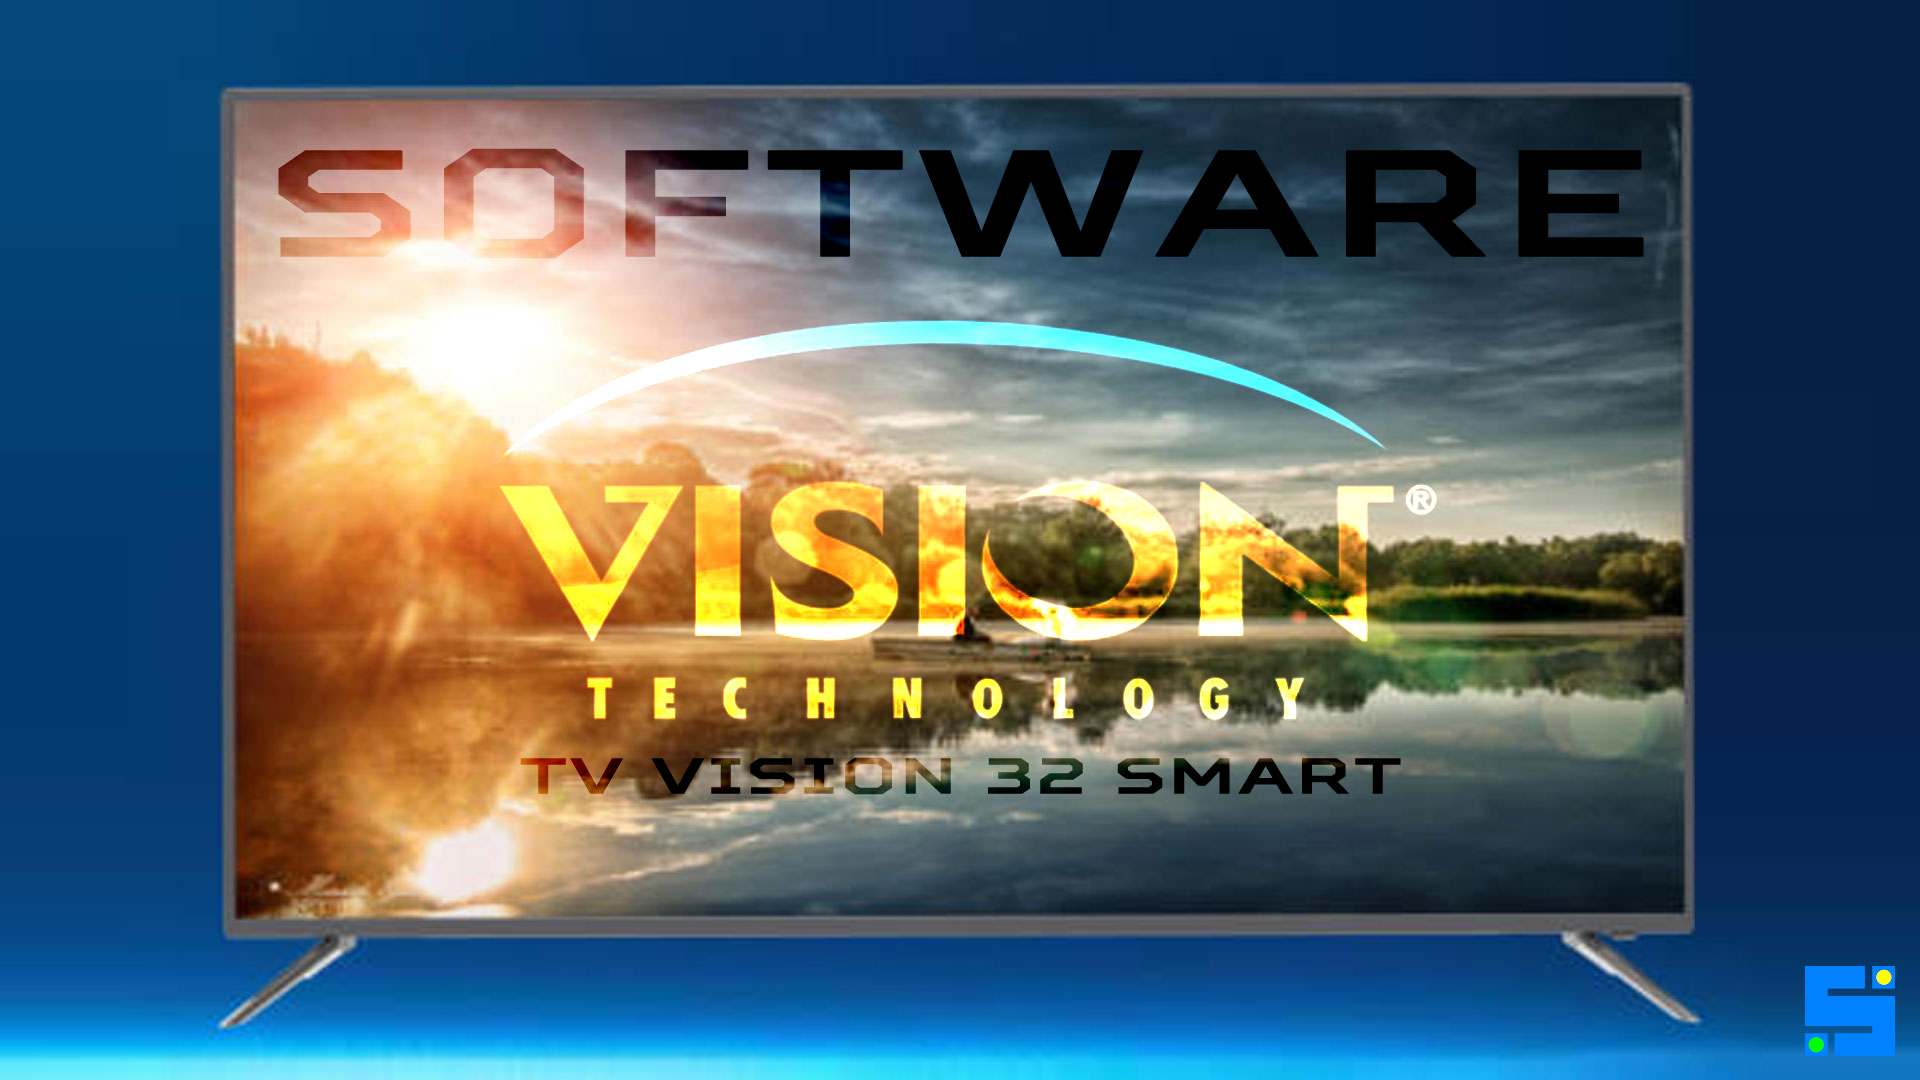 Download Software TV Vision 32 Smart New Update Firmware